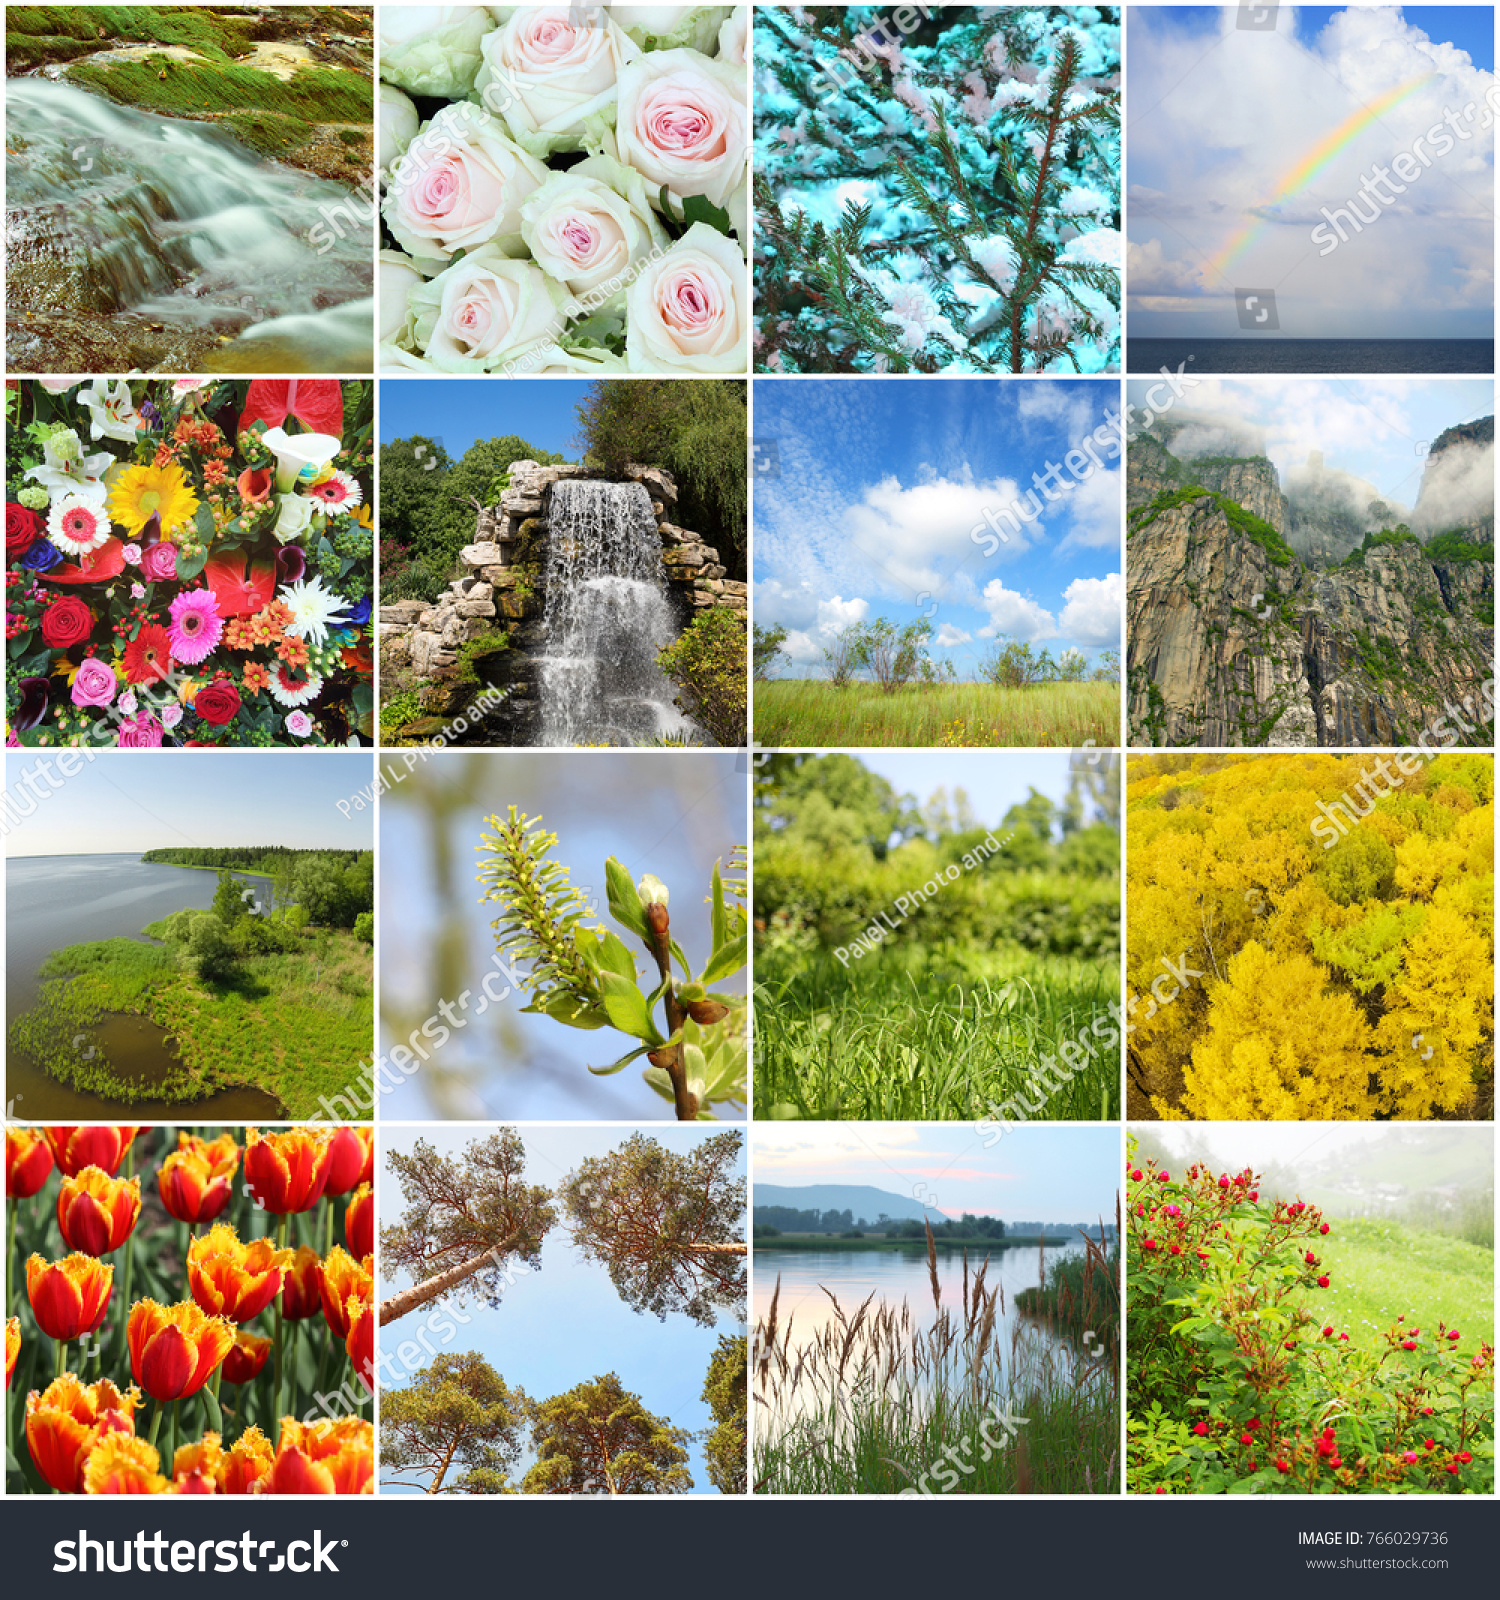 Collage beautiful flowers landscapes buds waterfalls stock photo collage with beautiful flowers landscapes buds waterfalls branches izmirmasajfo